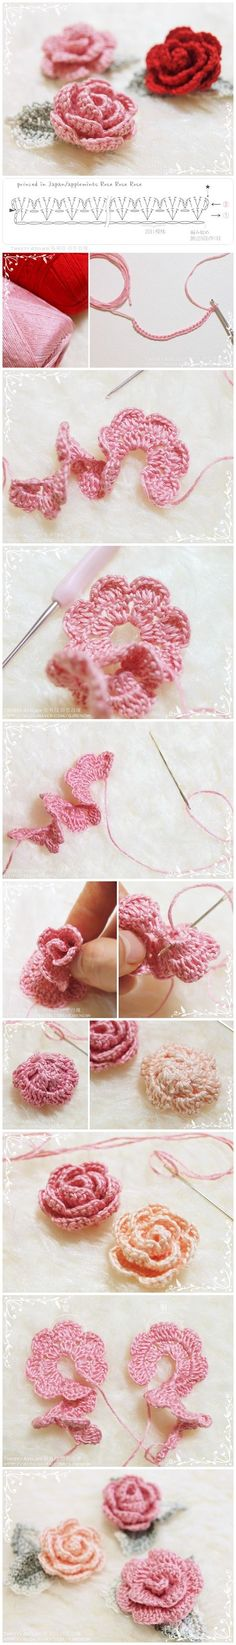 Crochet Beautiful Flower Step By Step